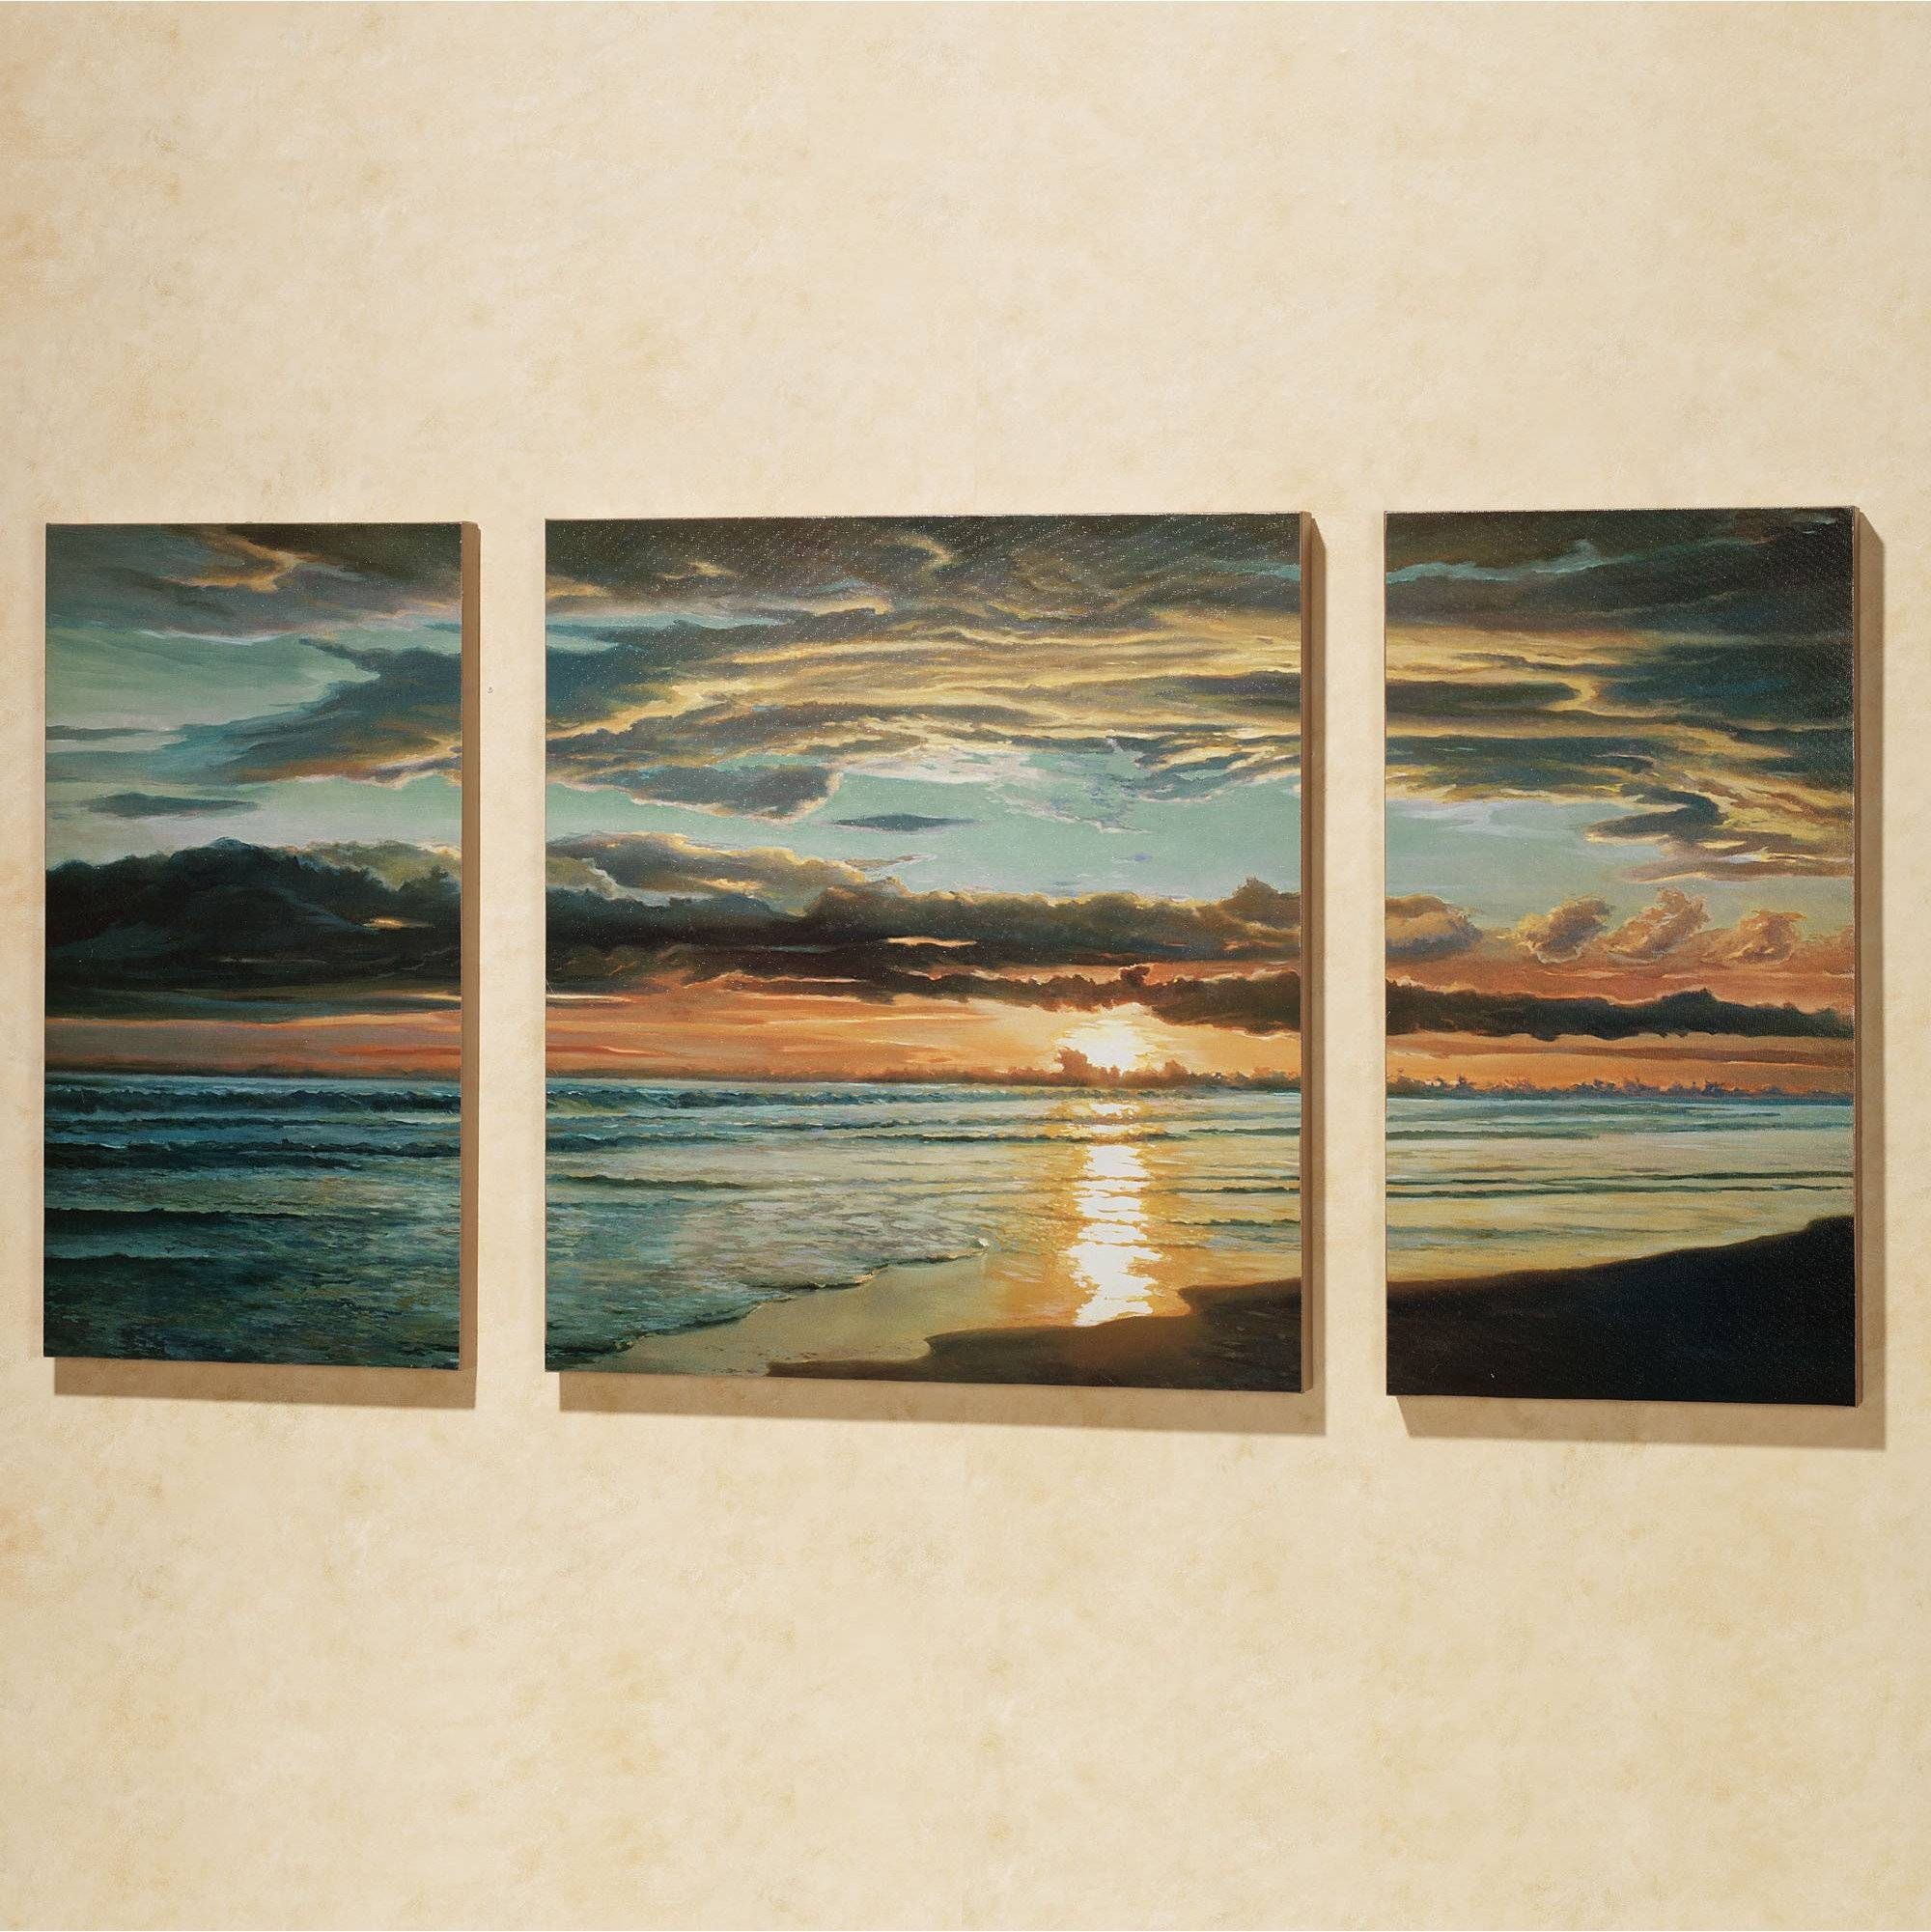 Wall Art Designs: Prints Canvas Triptych Wall Art Sale Large Metal Intended For Newest Triptych Art For Sale (View 11 of 20)